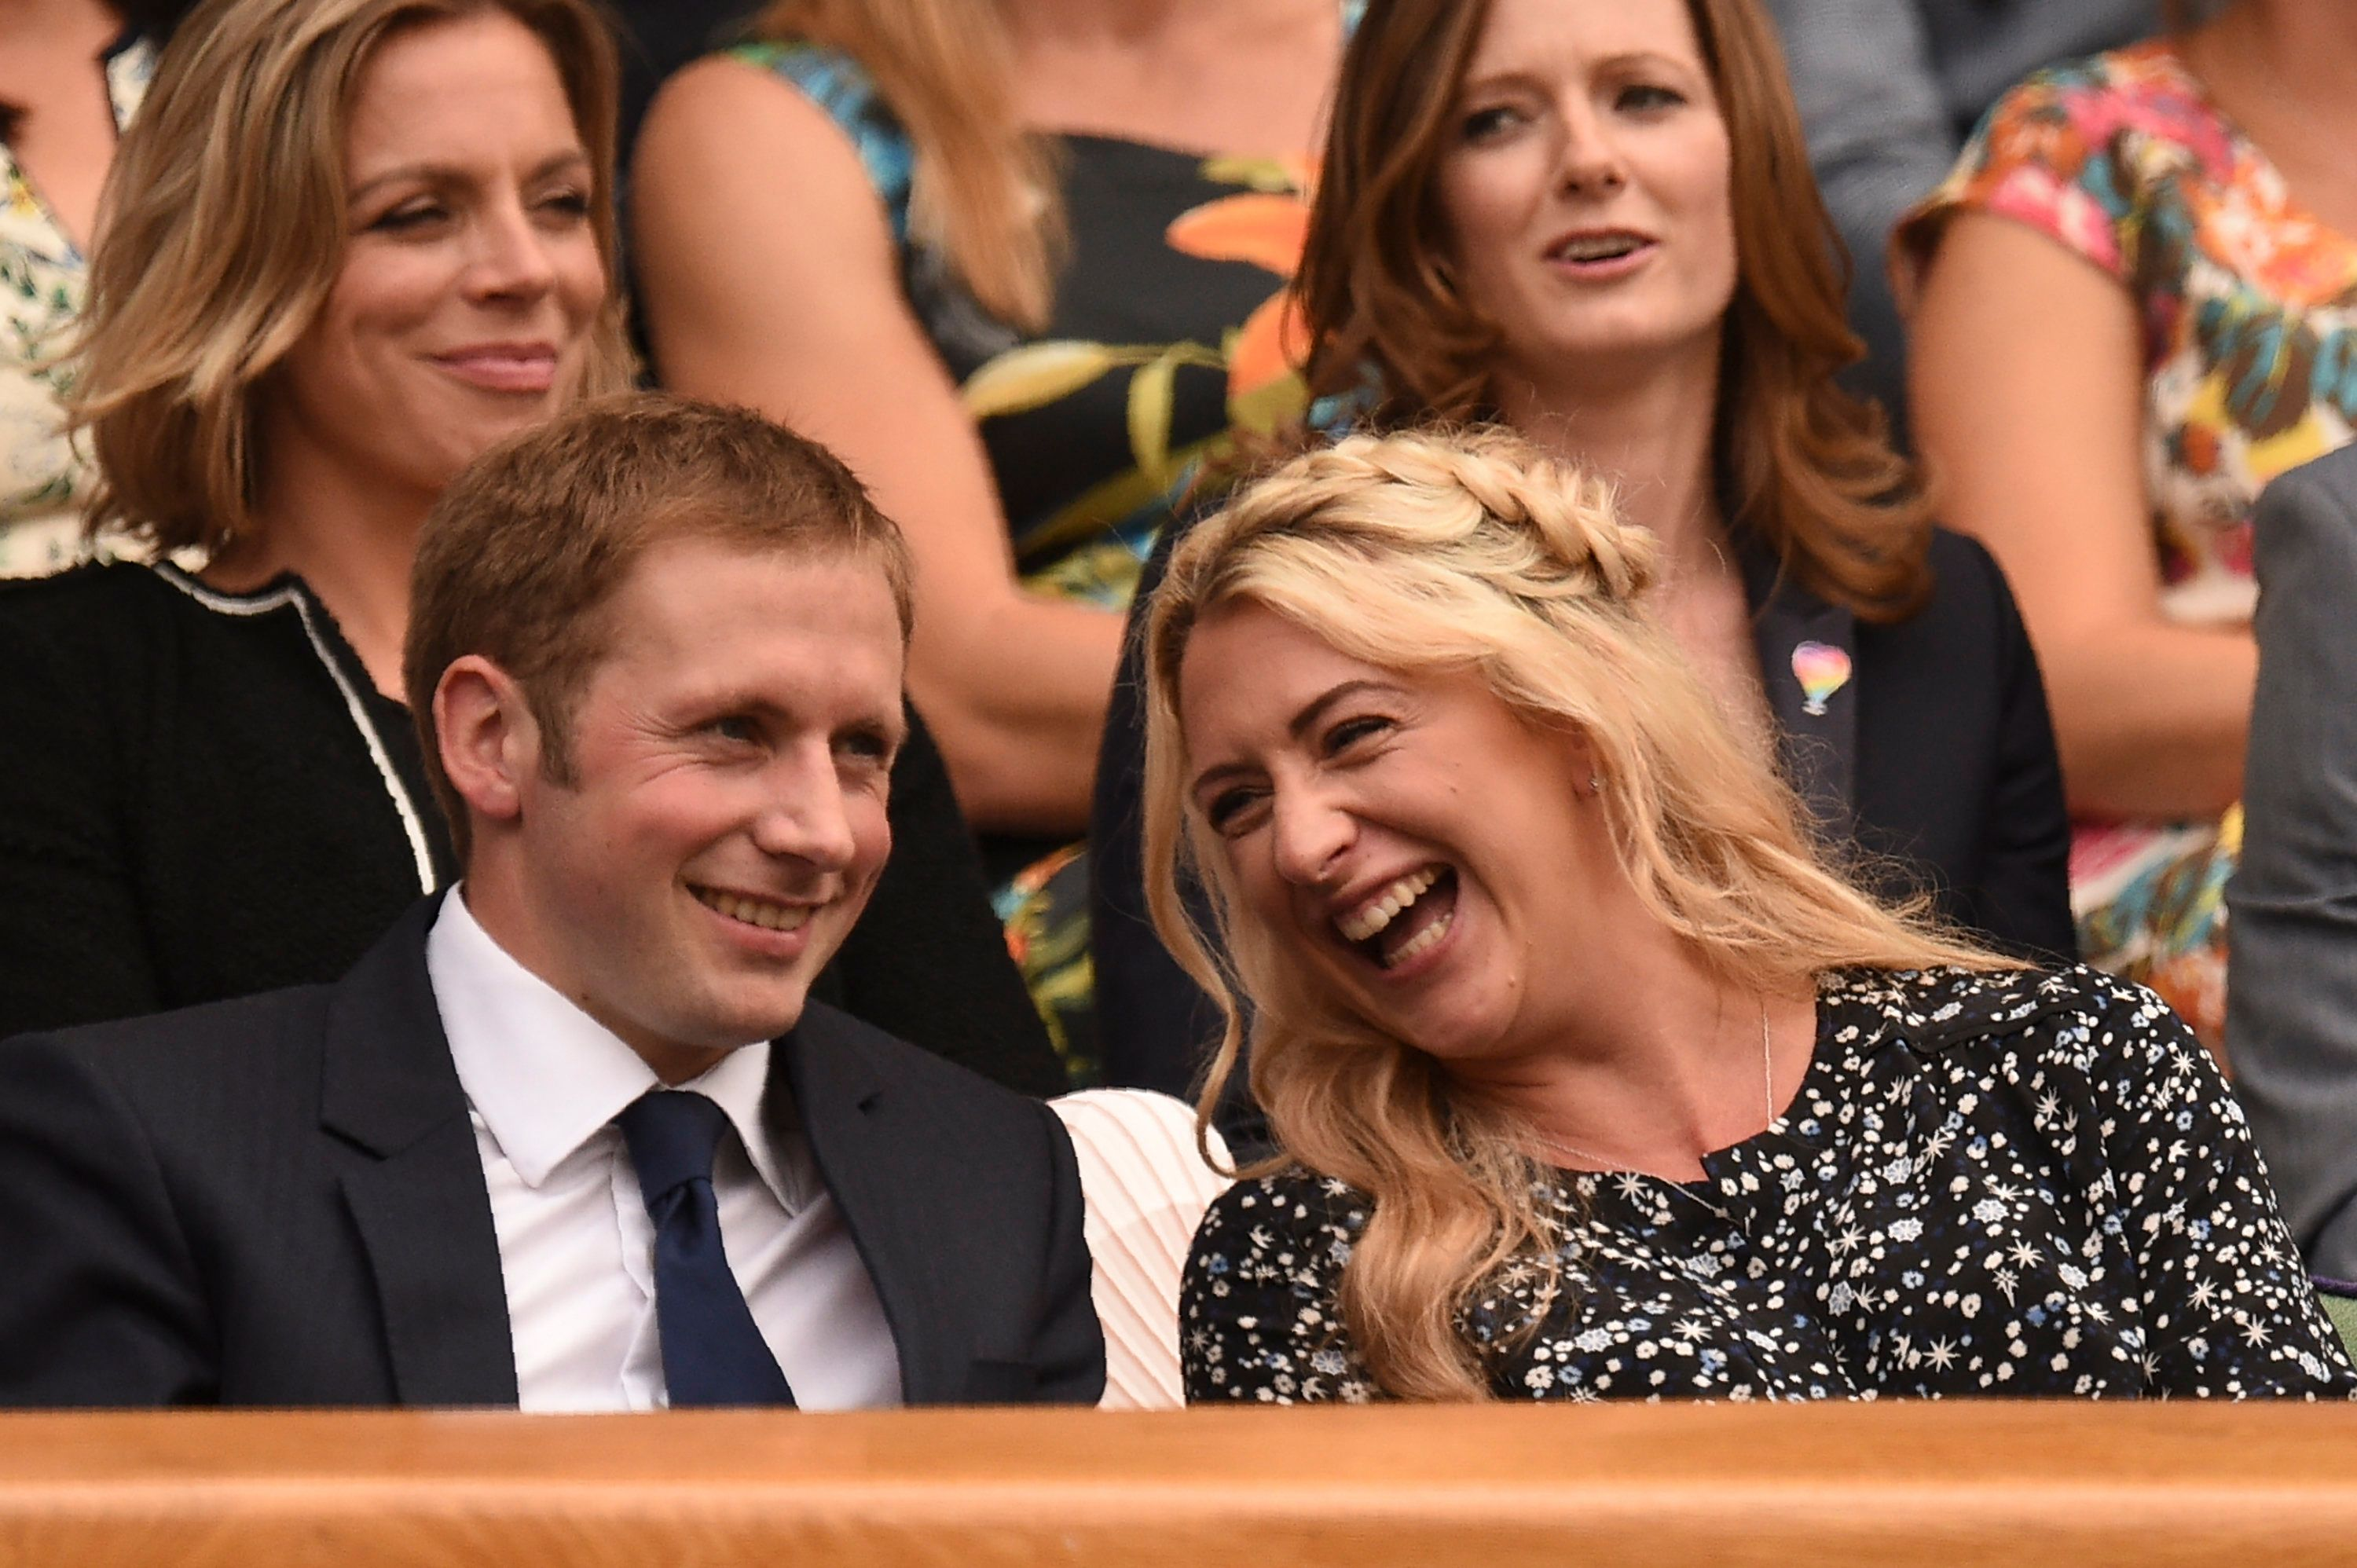 The Sunday Times Called Olympic Gold Medalist Laura Kenny 'Jason's Pregnant Wife' And People Are